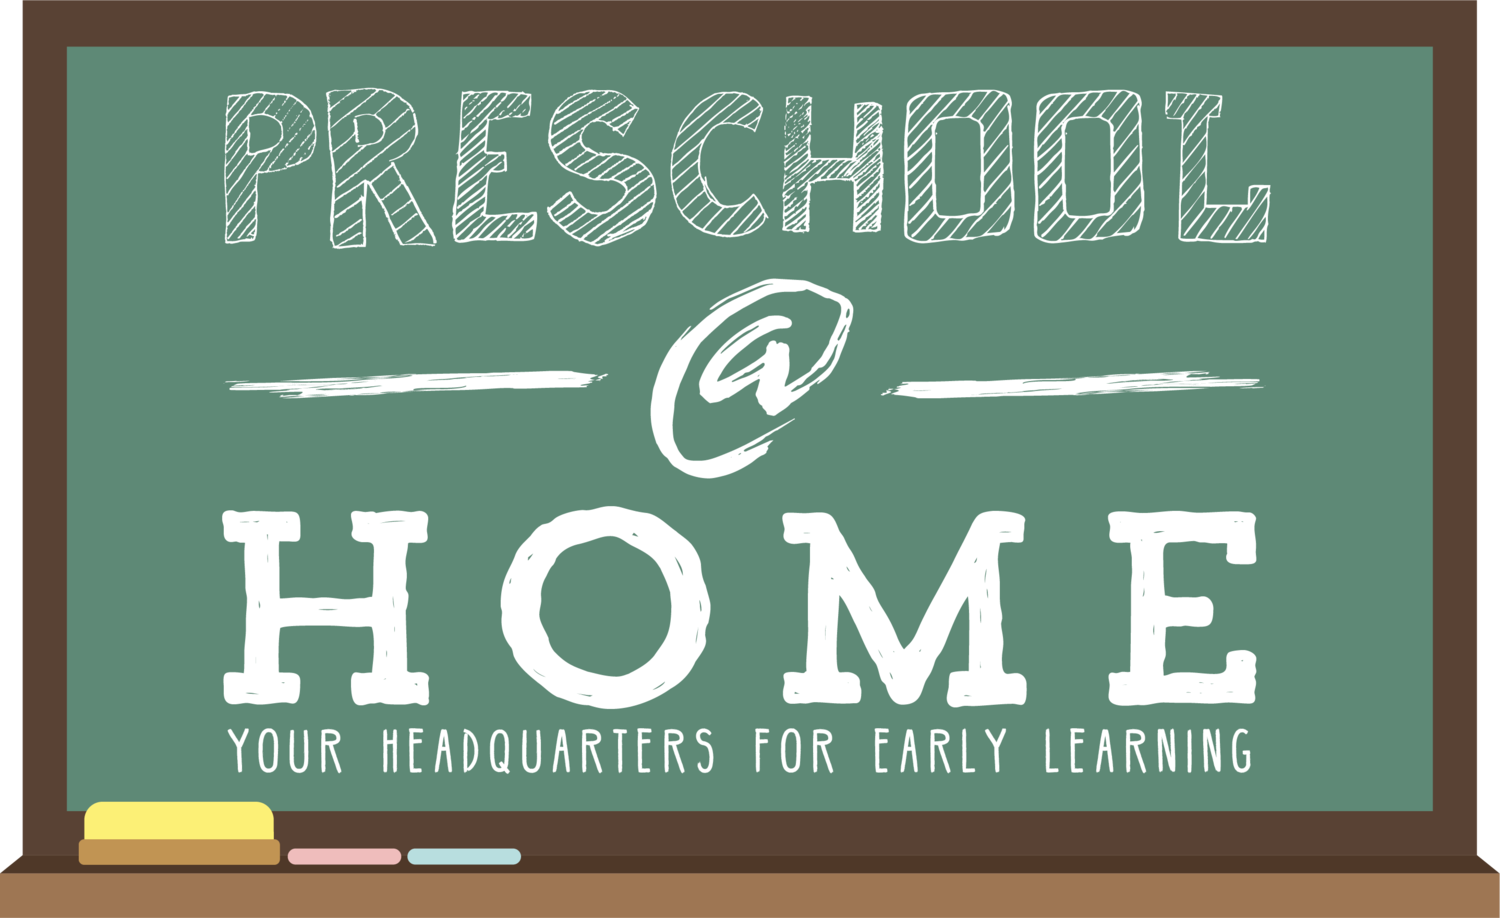 Preschool at Home HQ